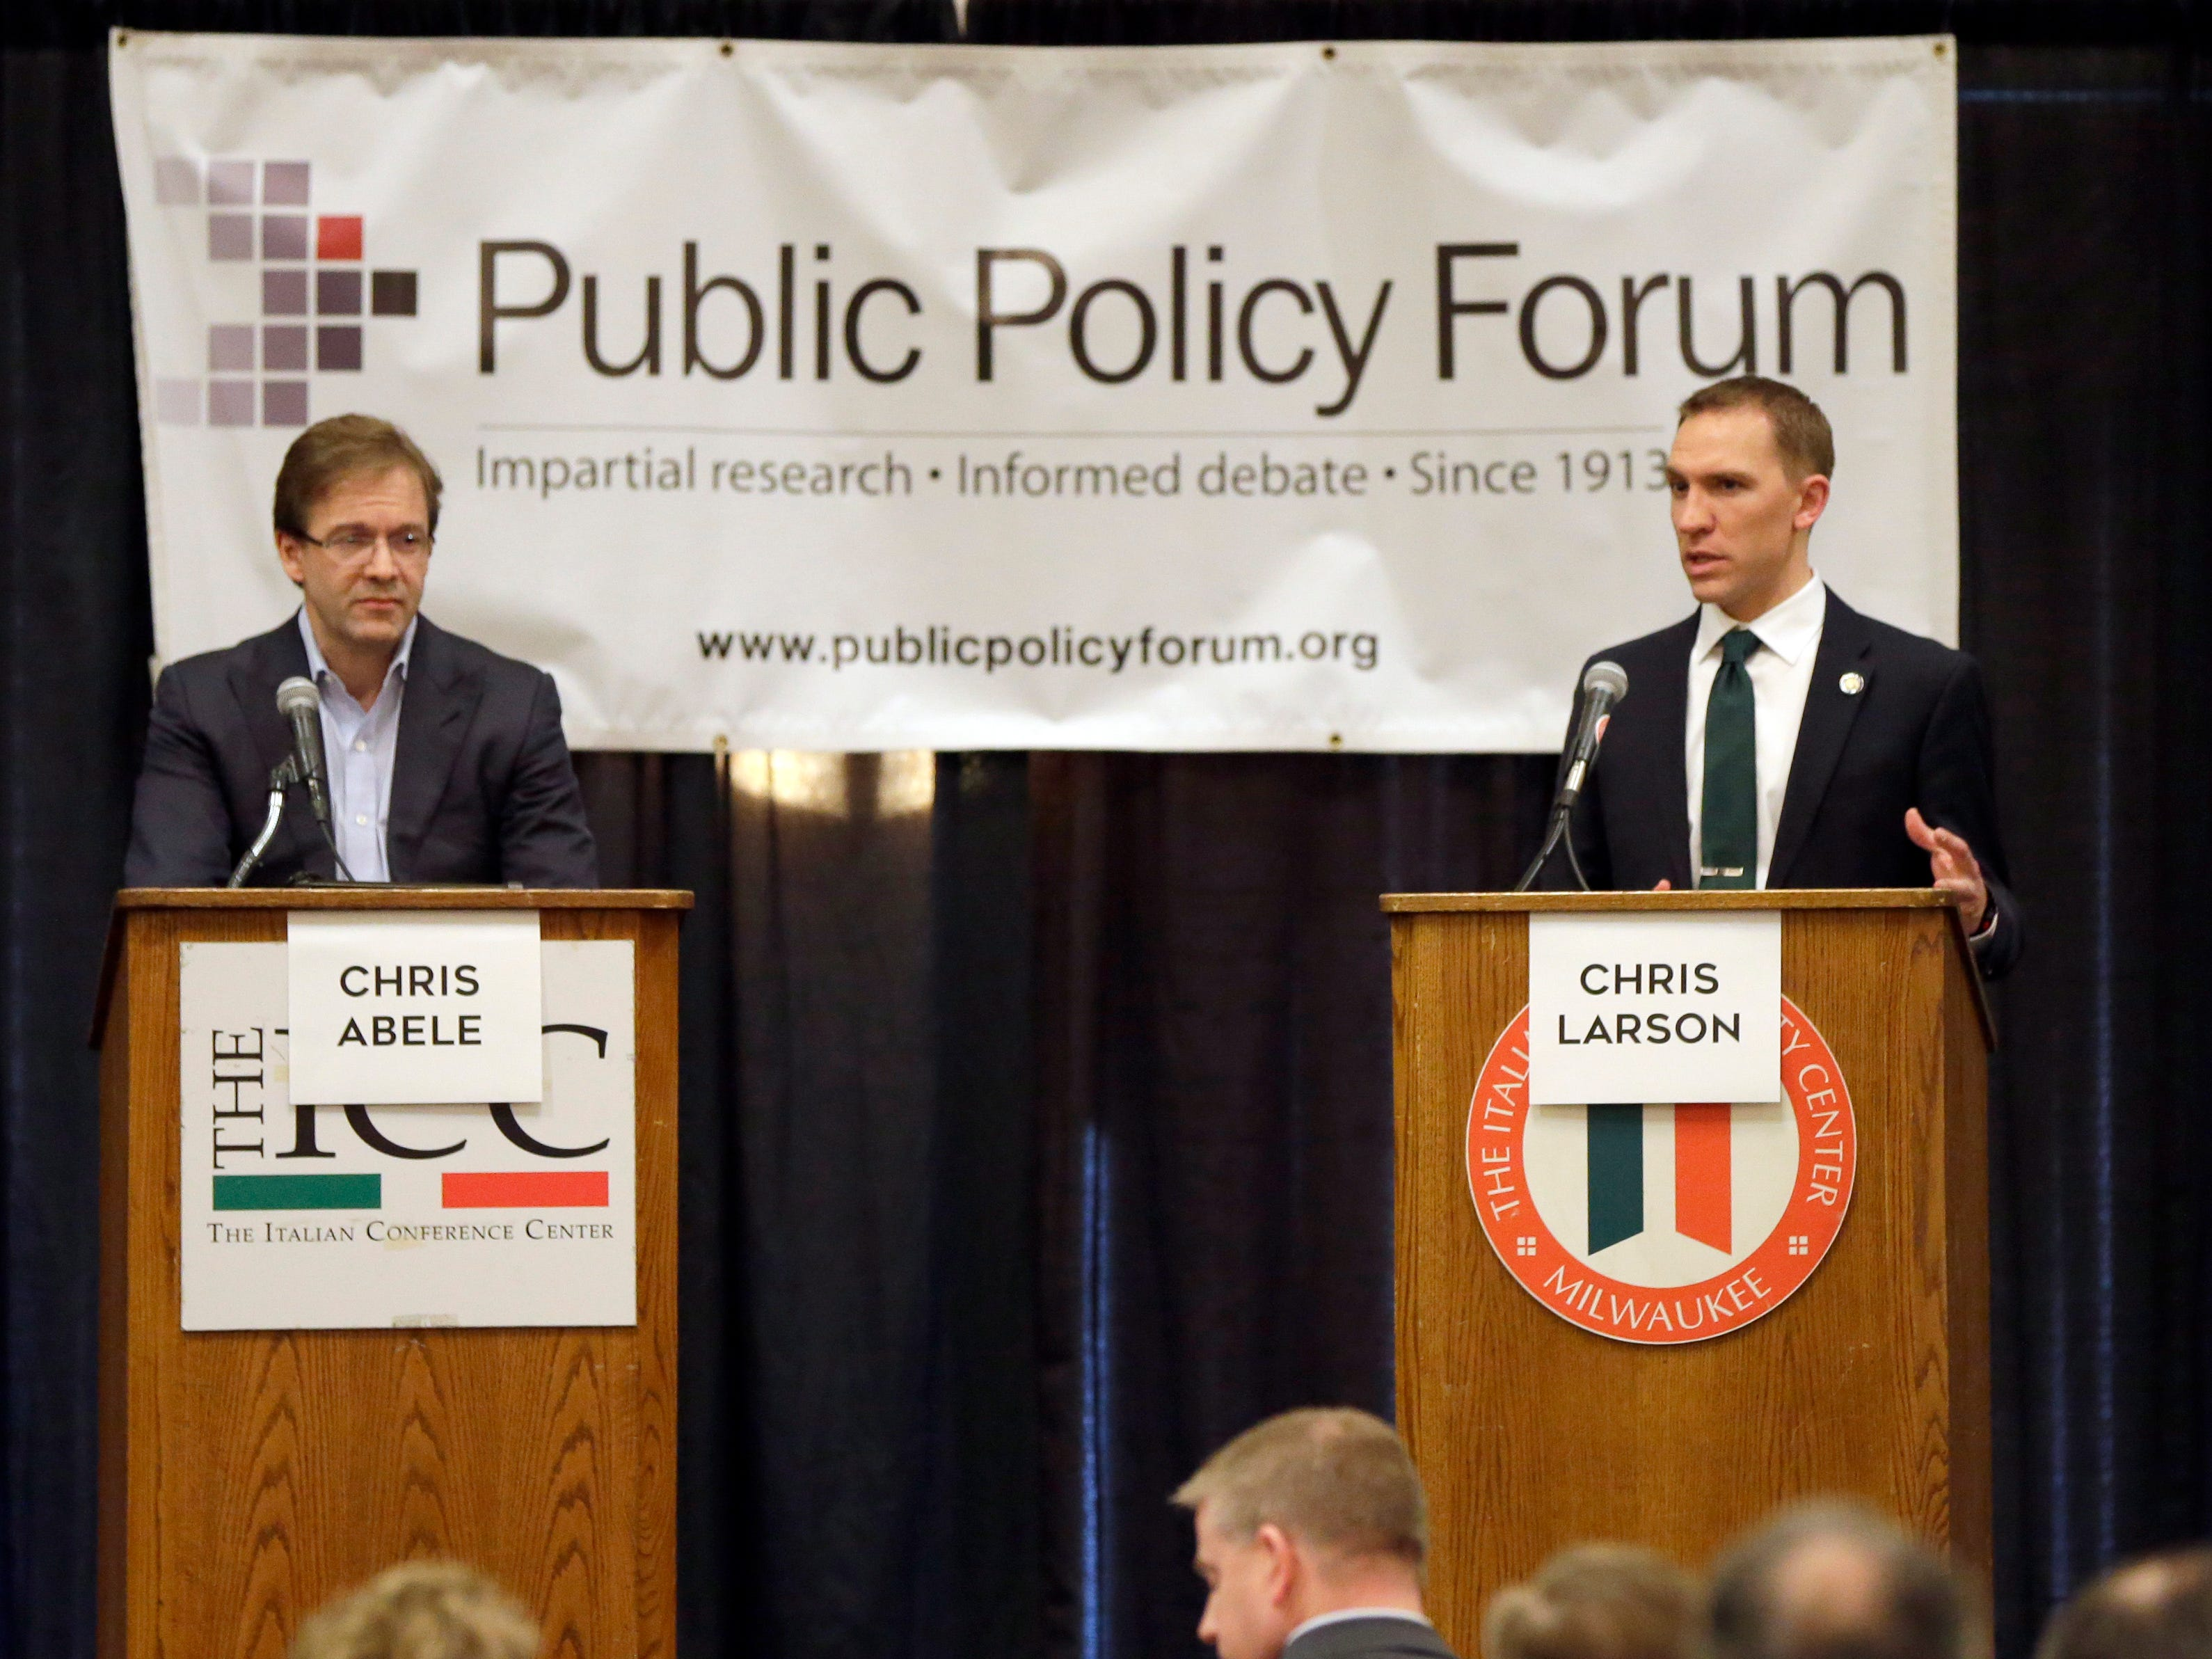 2016: Milwaukee County Executive incumbent Chris Abele (left) listens as challenger Chris Larson speaks during a debate. The Milwaukee County Executive candidates debated at  the Italian Conference Center, 631 E. Chicago St., in Milwaukee. Abele is seeking re-election to a second full four-year term.